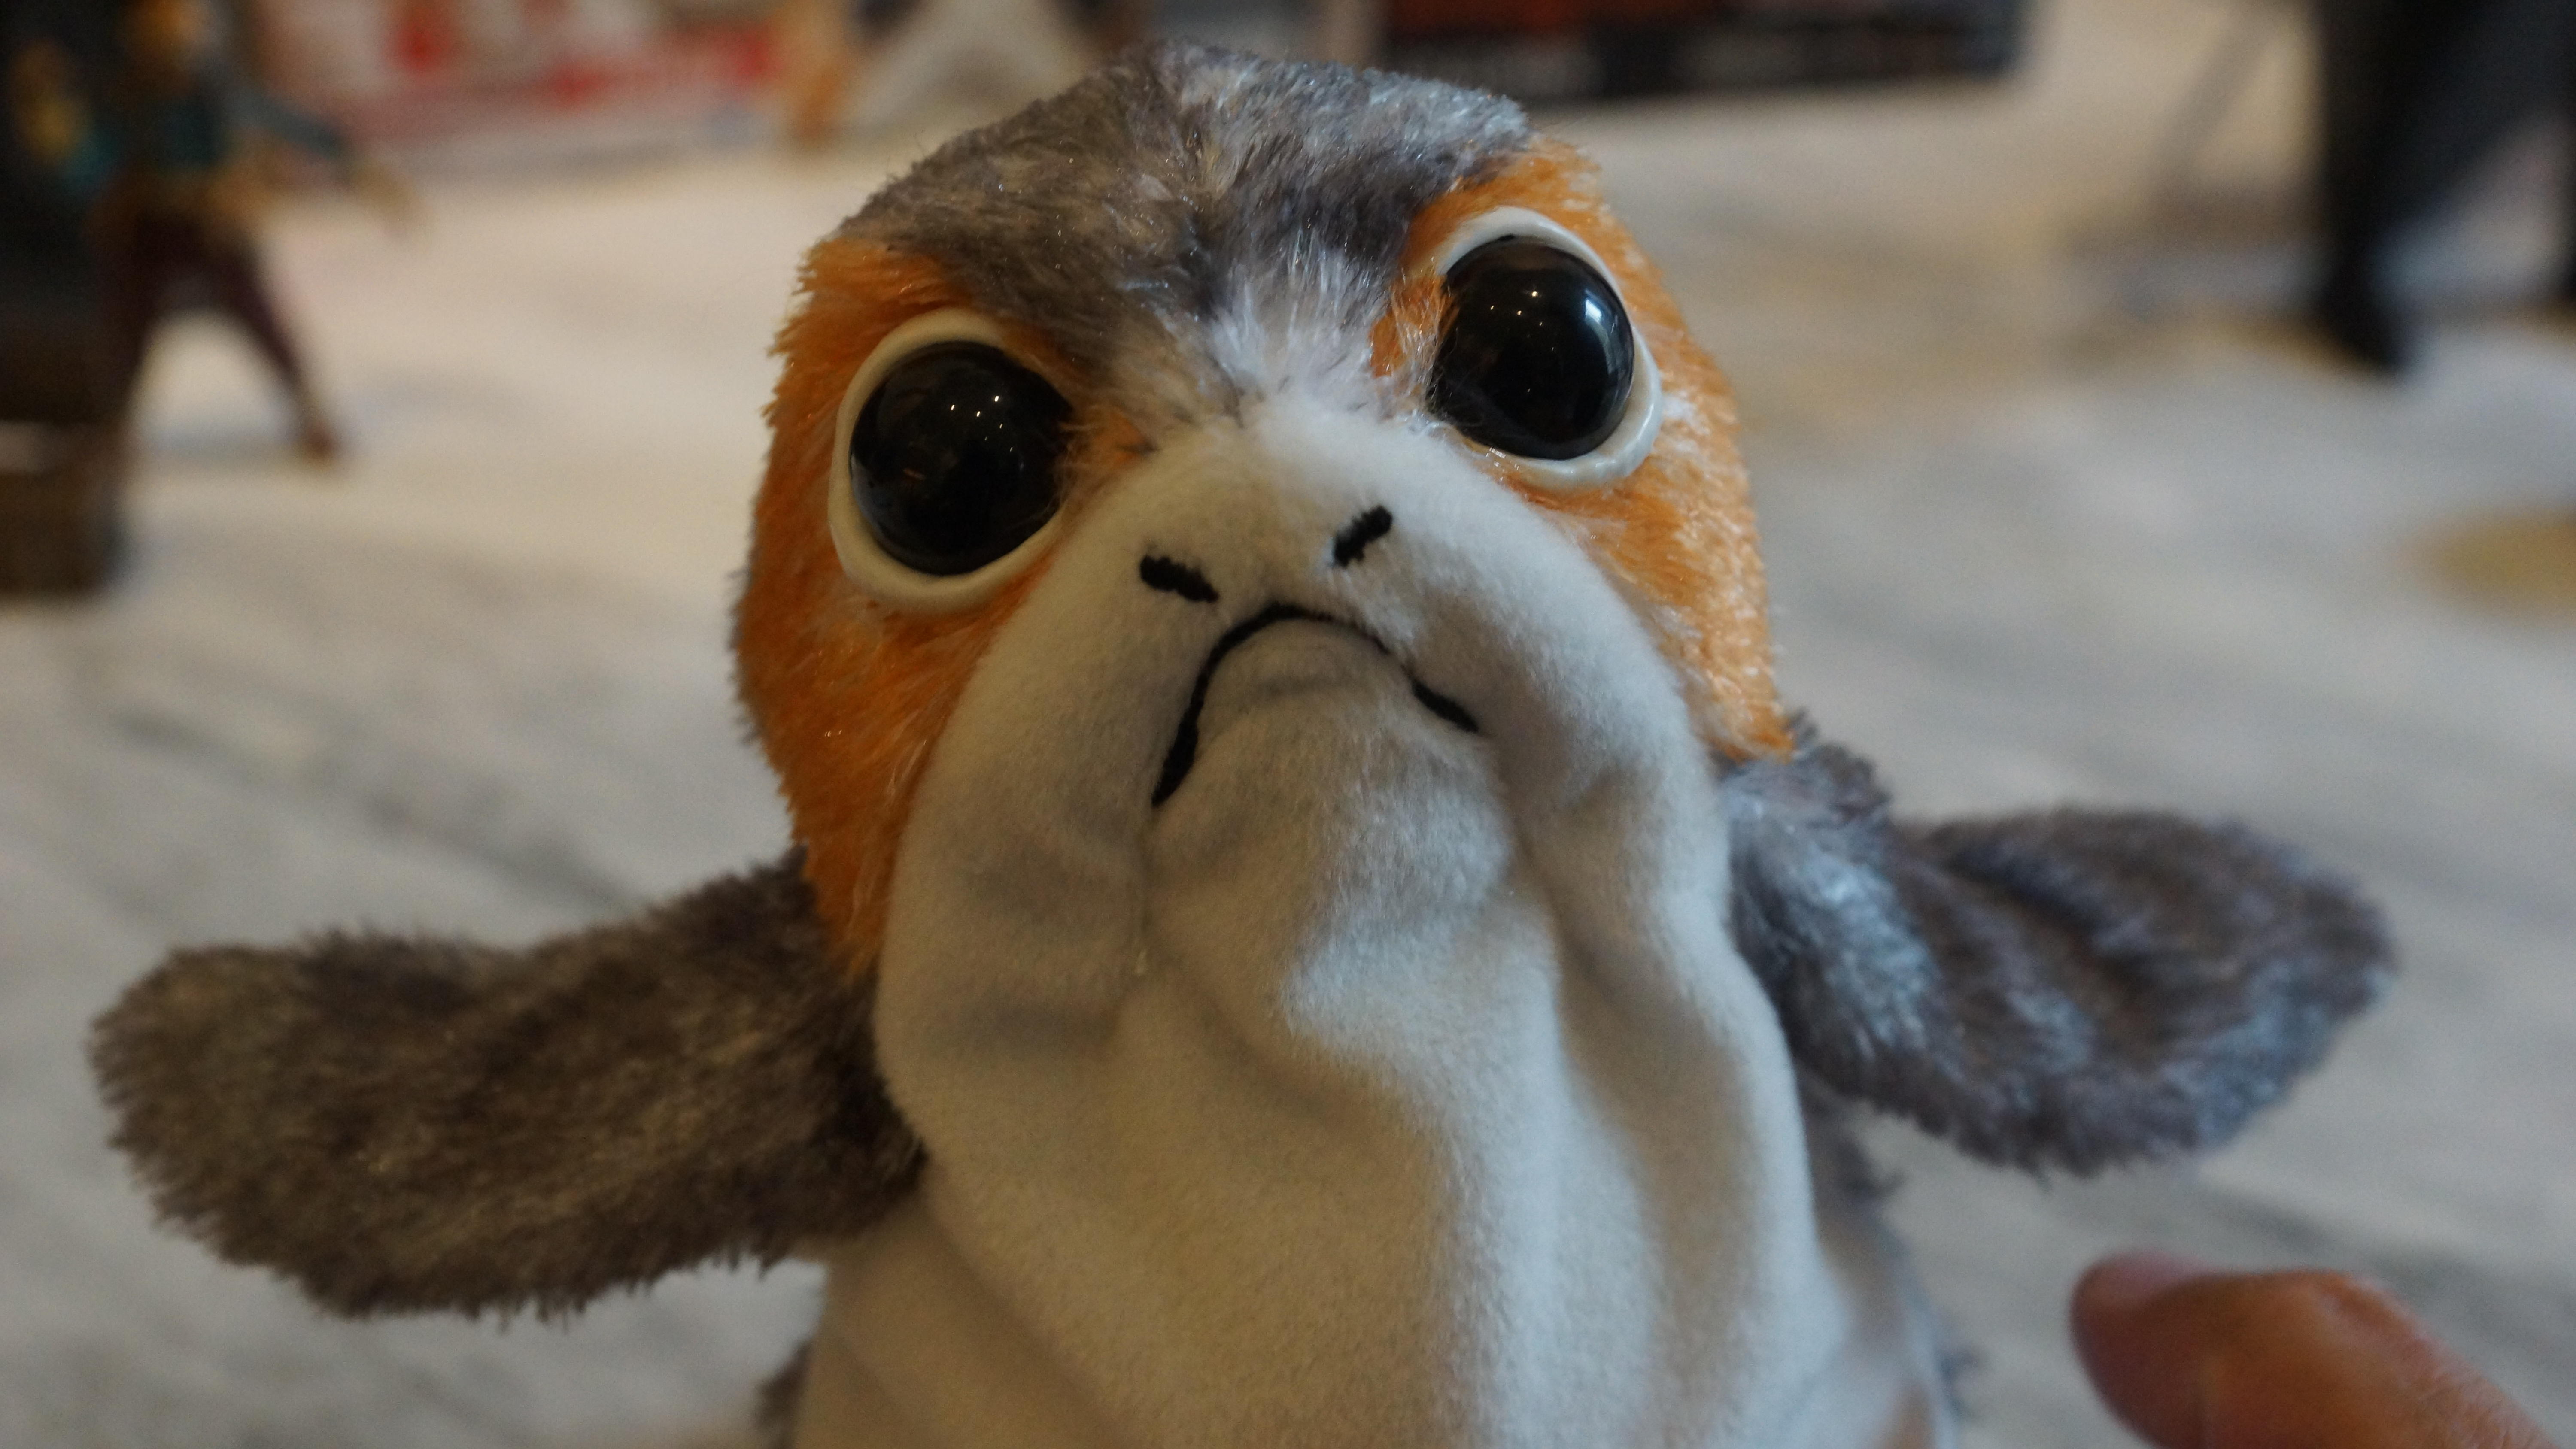 Look at that pretty porg face!